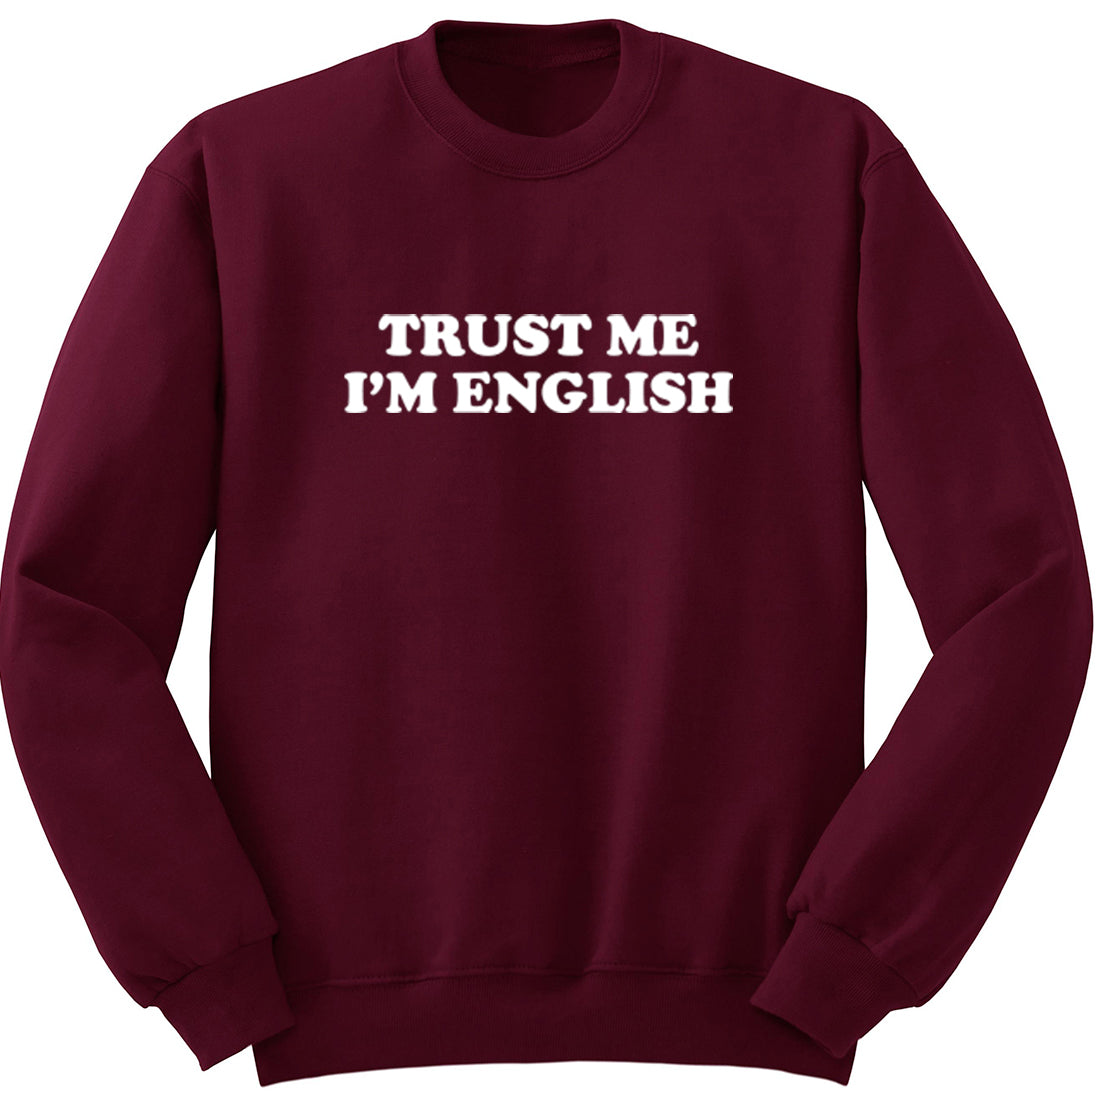 Trust Me I'm English Unisex Jumper K1990 - Illustrated Identity Ltd.